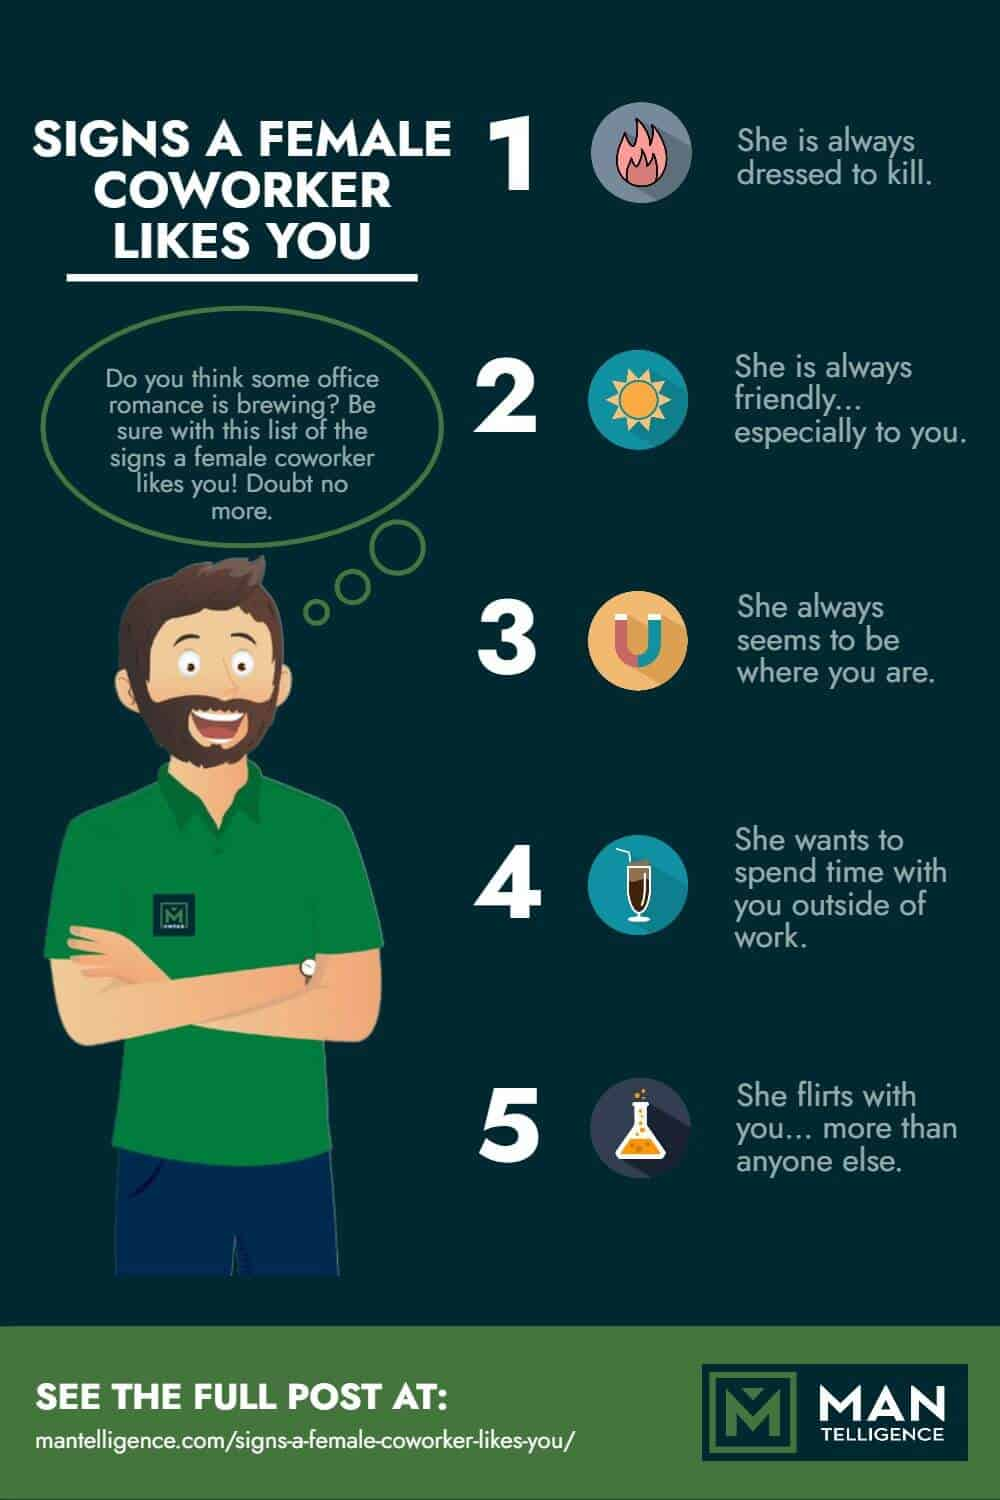 signs a female coworker likes you - infographic